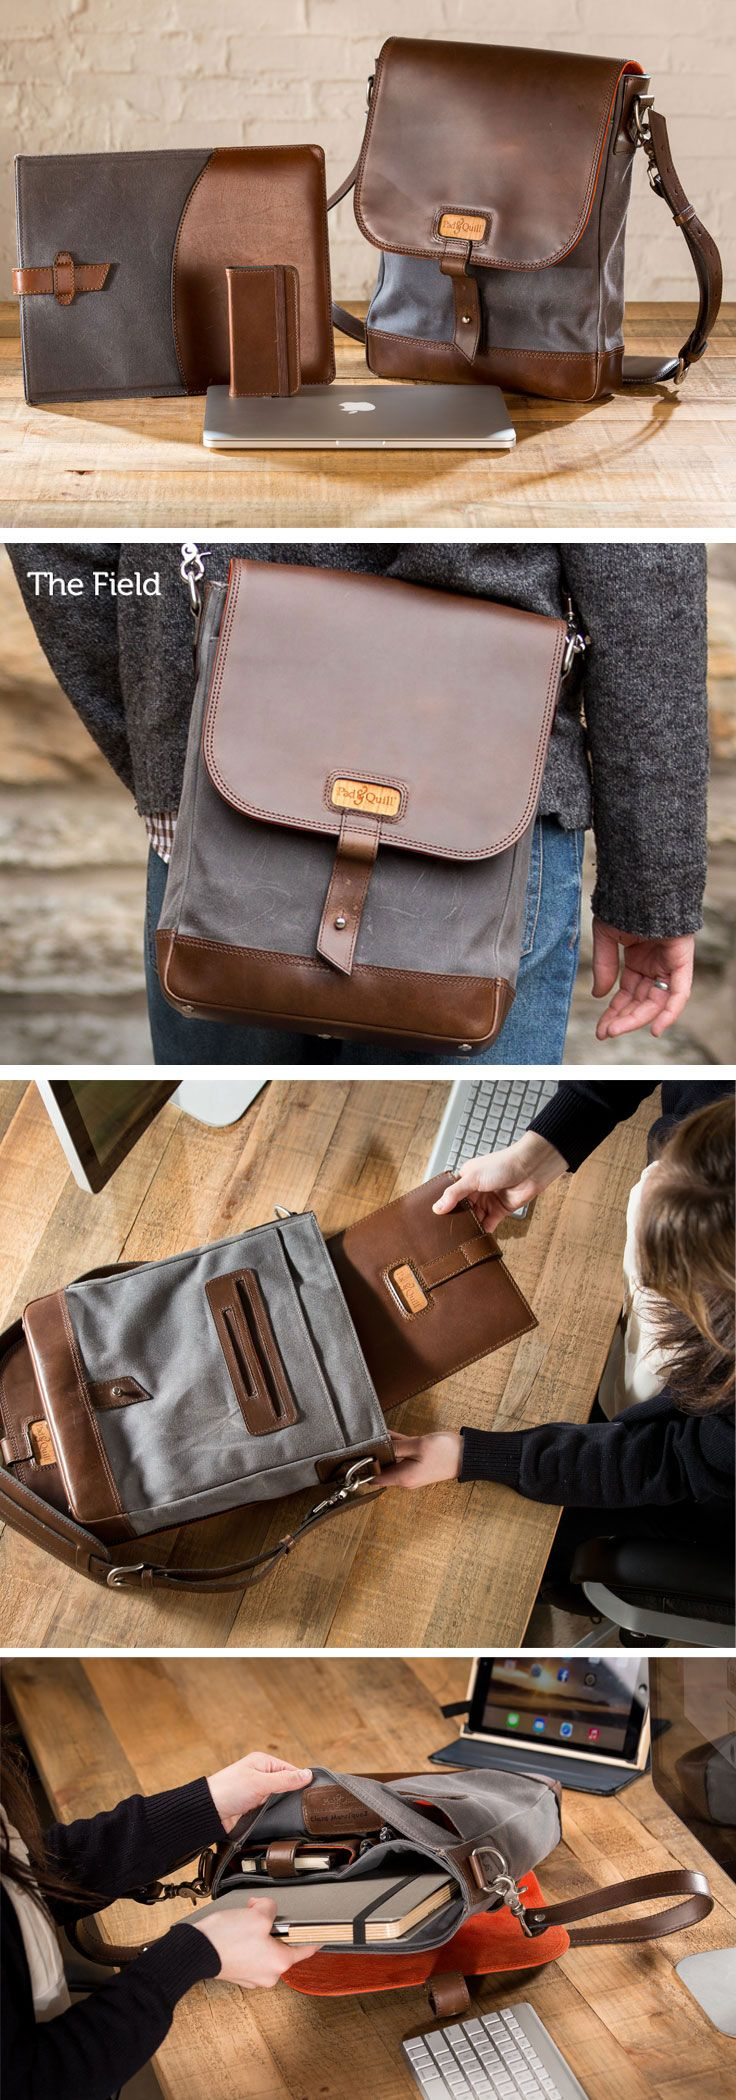 The Pad & Quill Field Bag is a vertical design that has tons of pockets for all your gear.